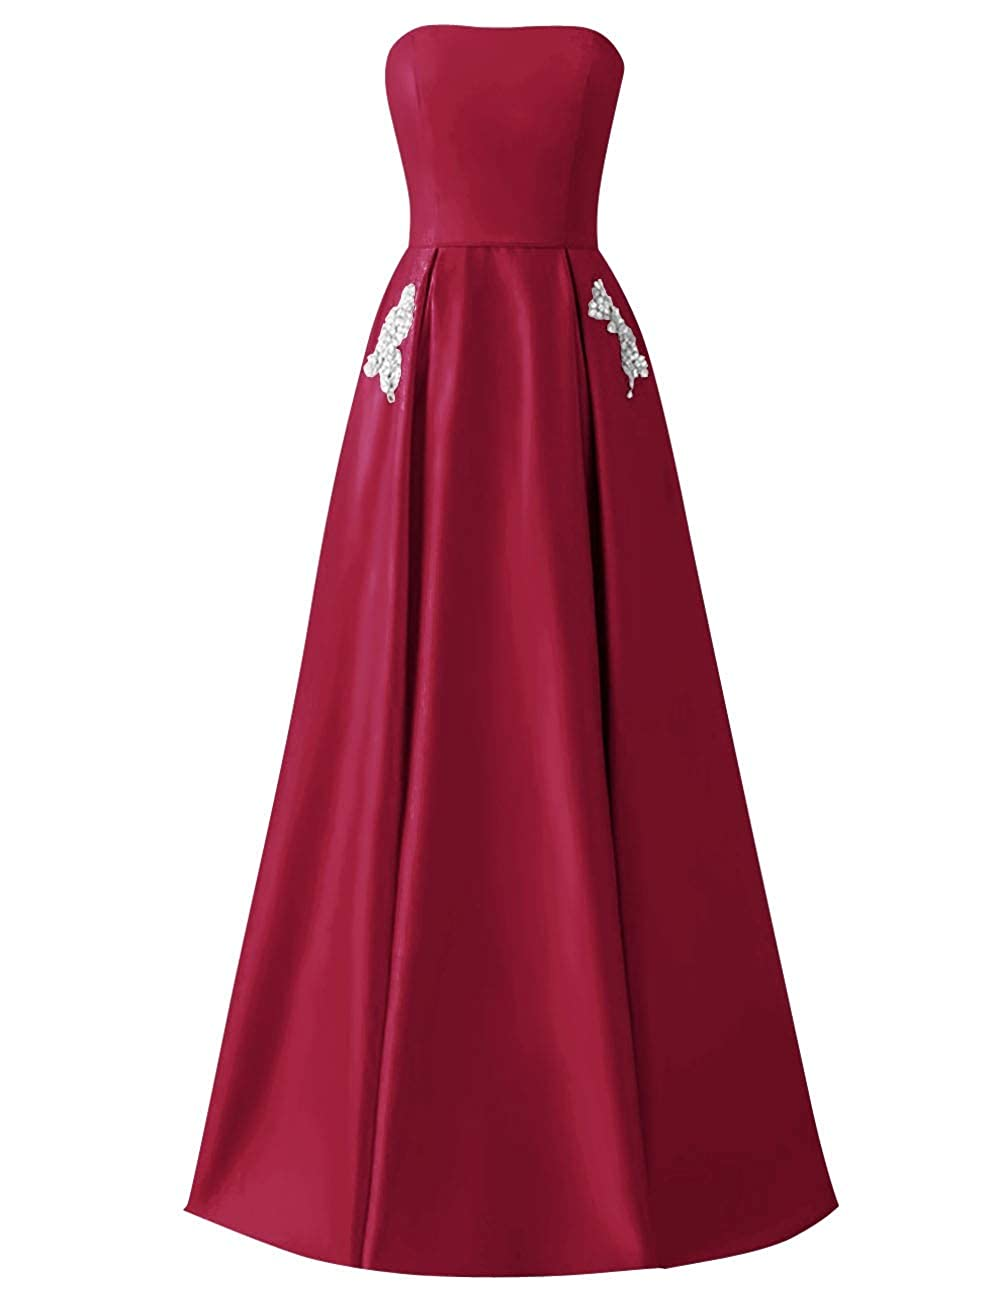 Burgundy MorySong Women Strapless Beading Pocket Prom Dress Satin Long Evening Party Gown